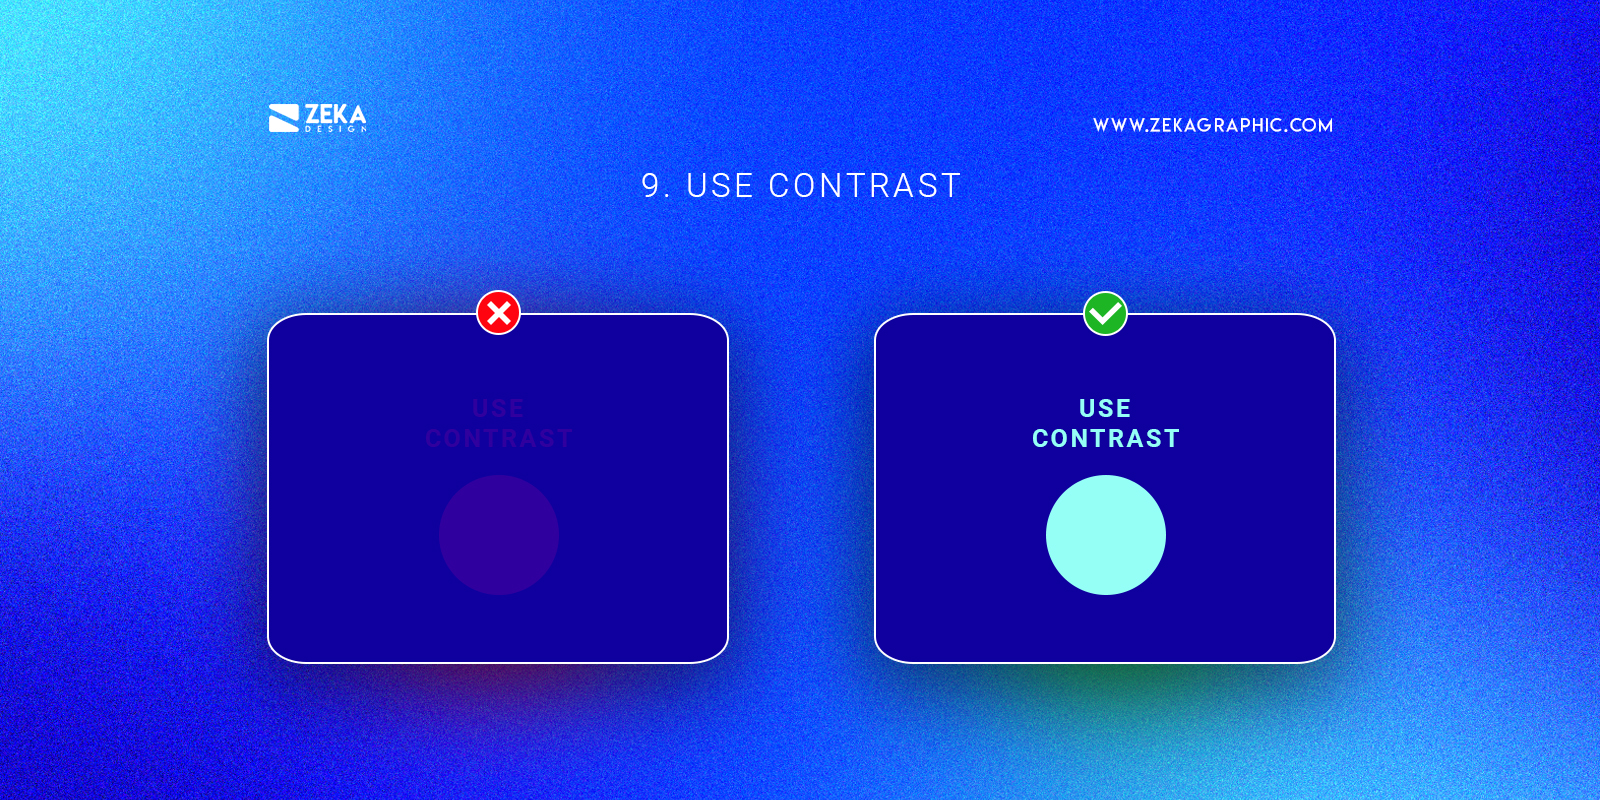 Use Contrast Graphic Design Tip To Become a Pro Graphic Designer